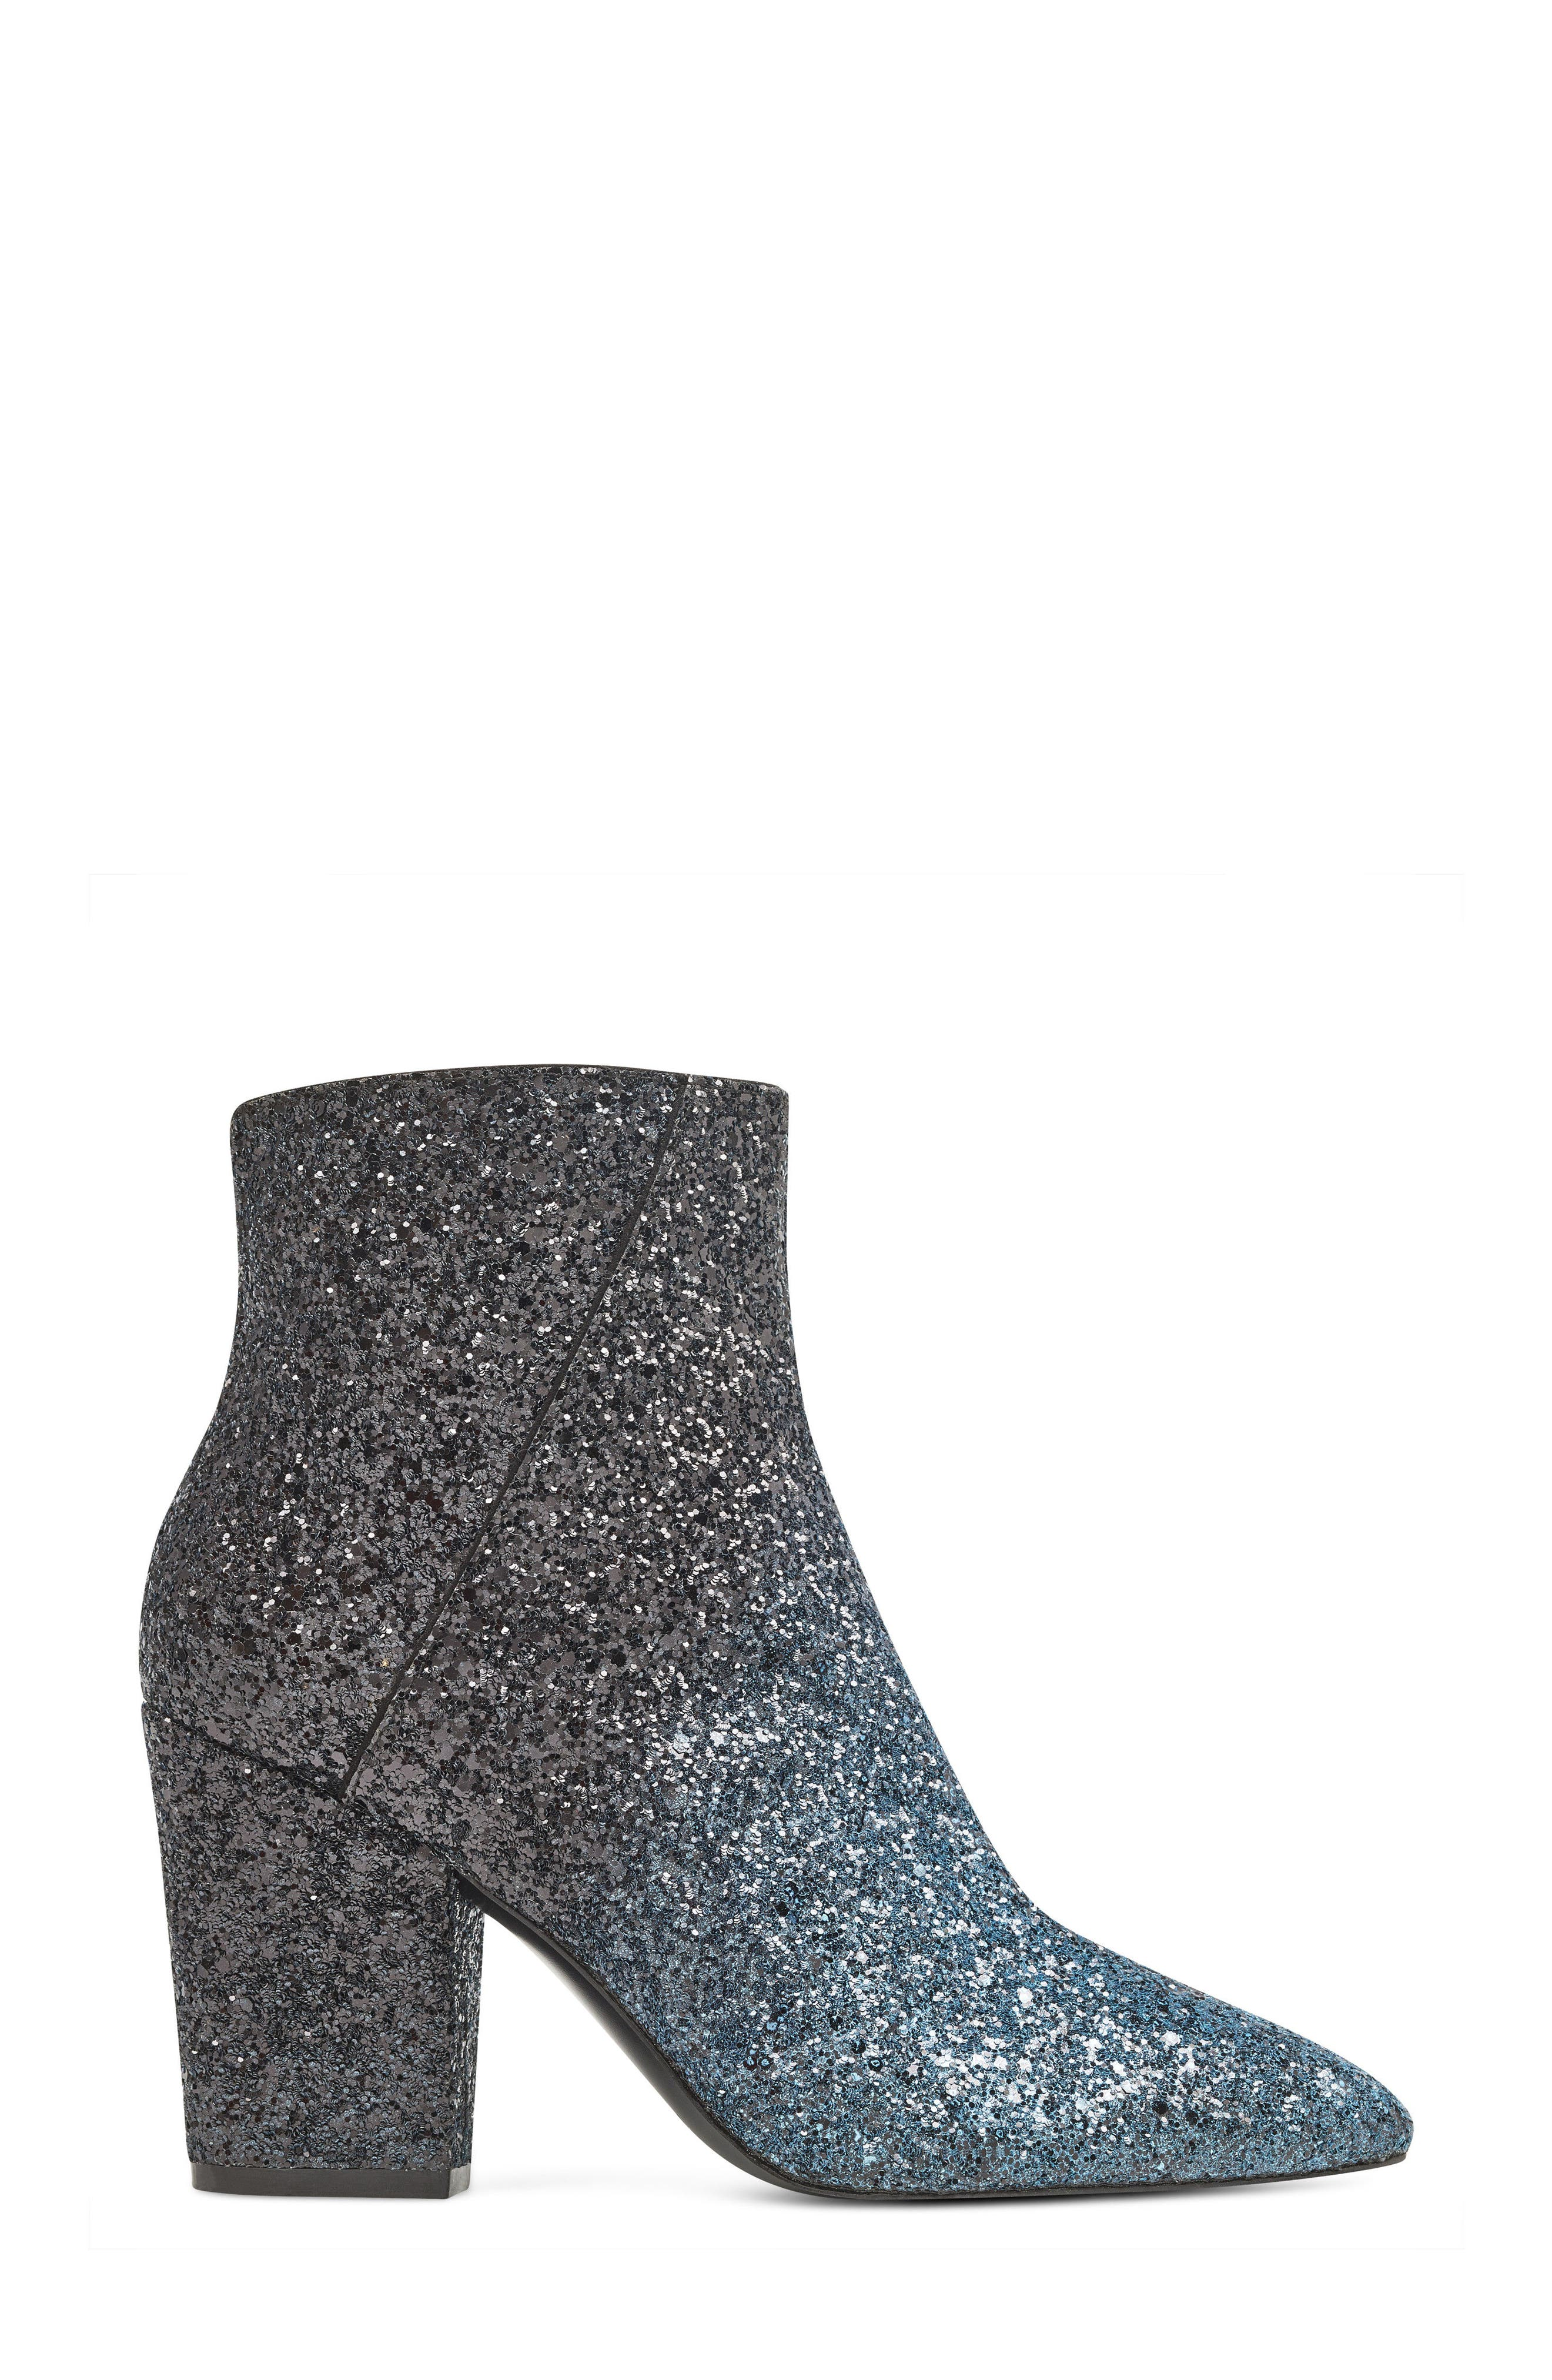 NINE WEST, Savitra Pointy Toe Bootie, Alternate thumbnail 3, color, 040